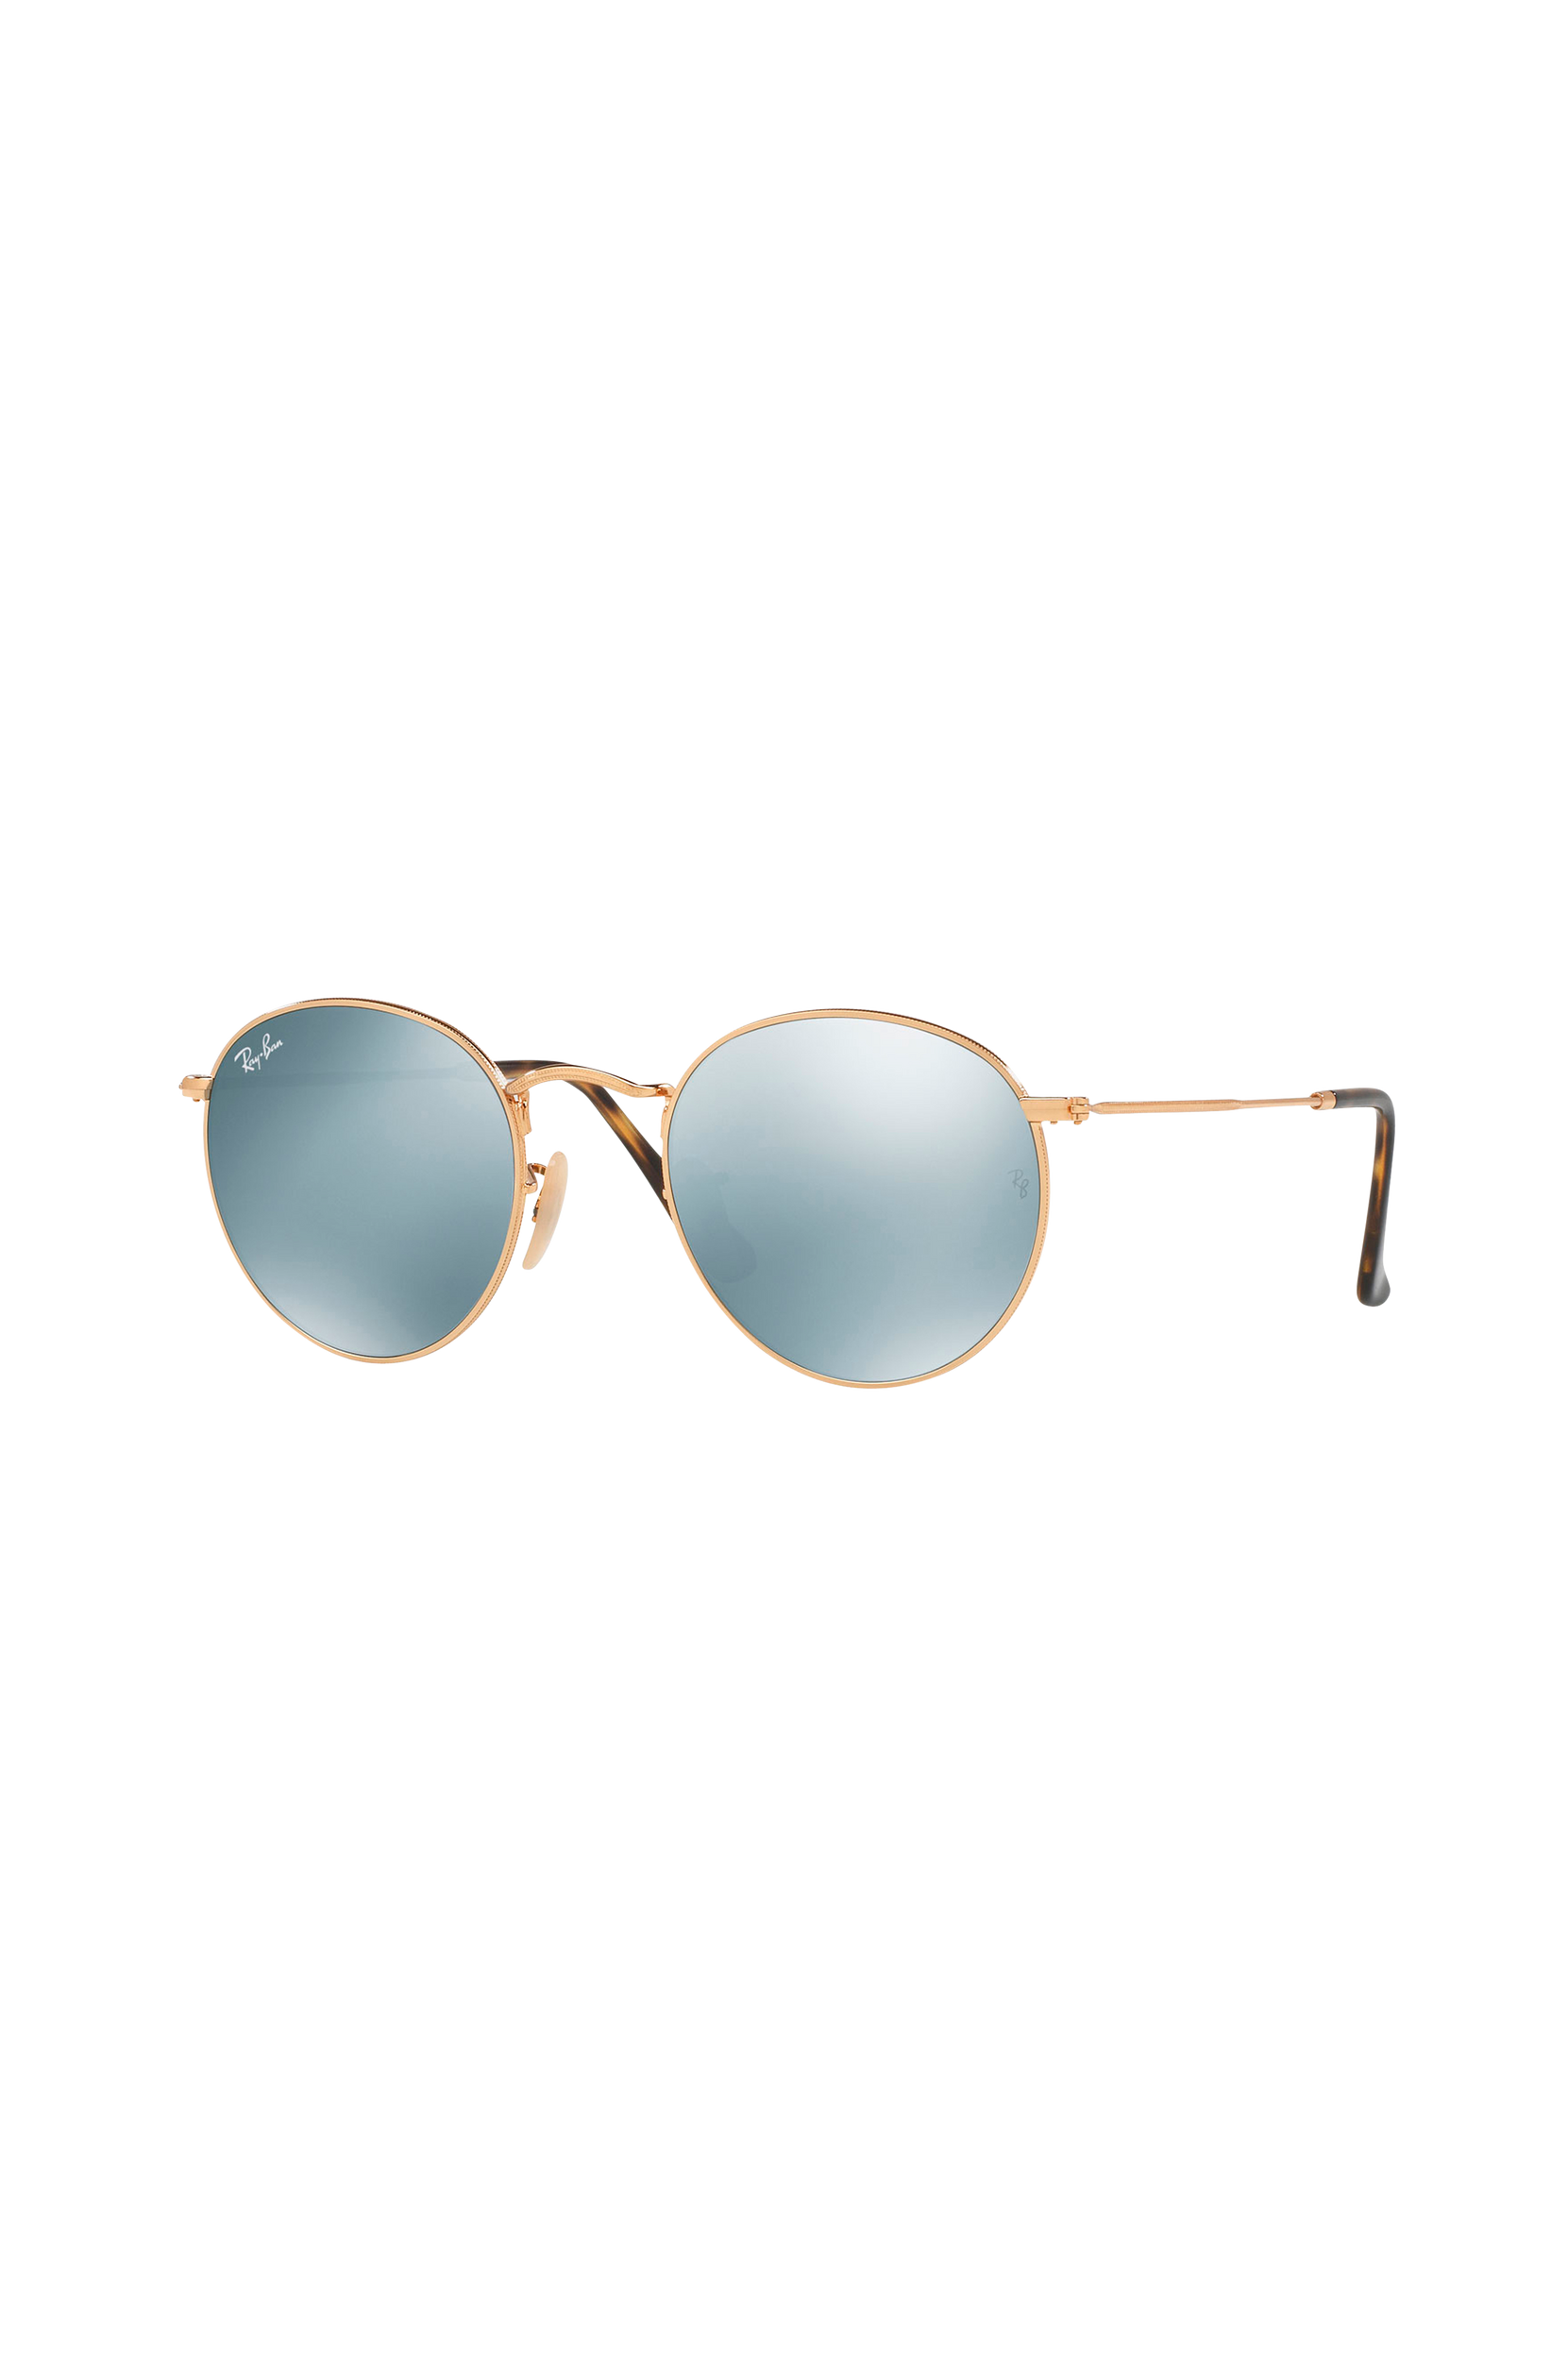 Round Metal Rb3447n Shiny Gold Ray Ban Accessories til Kvinder i